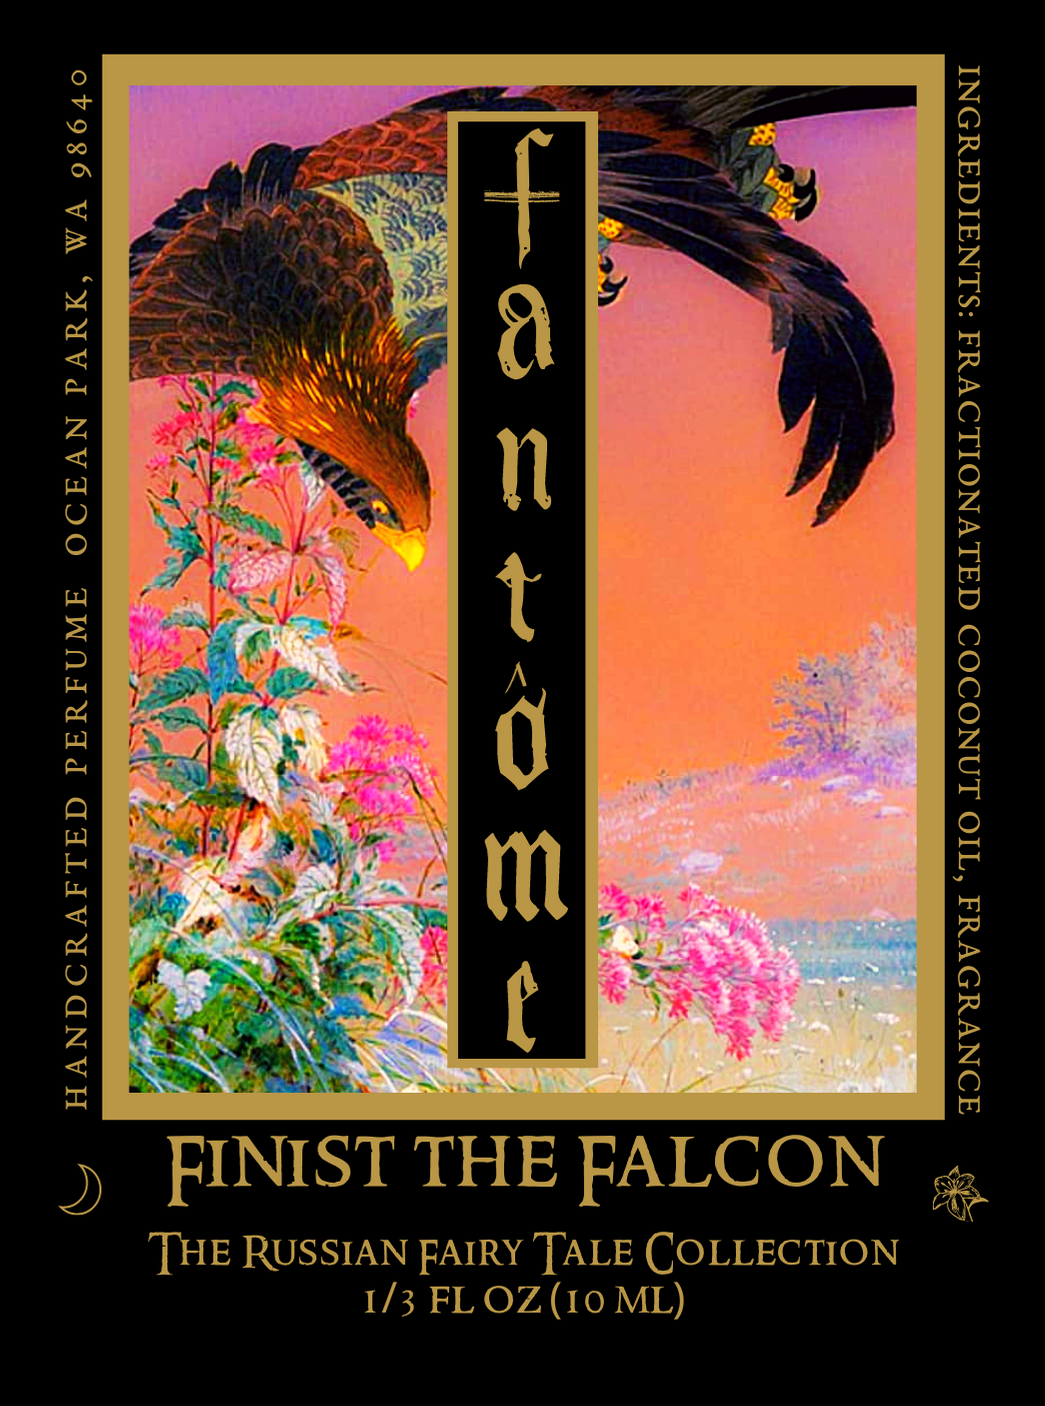 Finist the Falcon